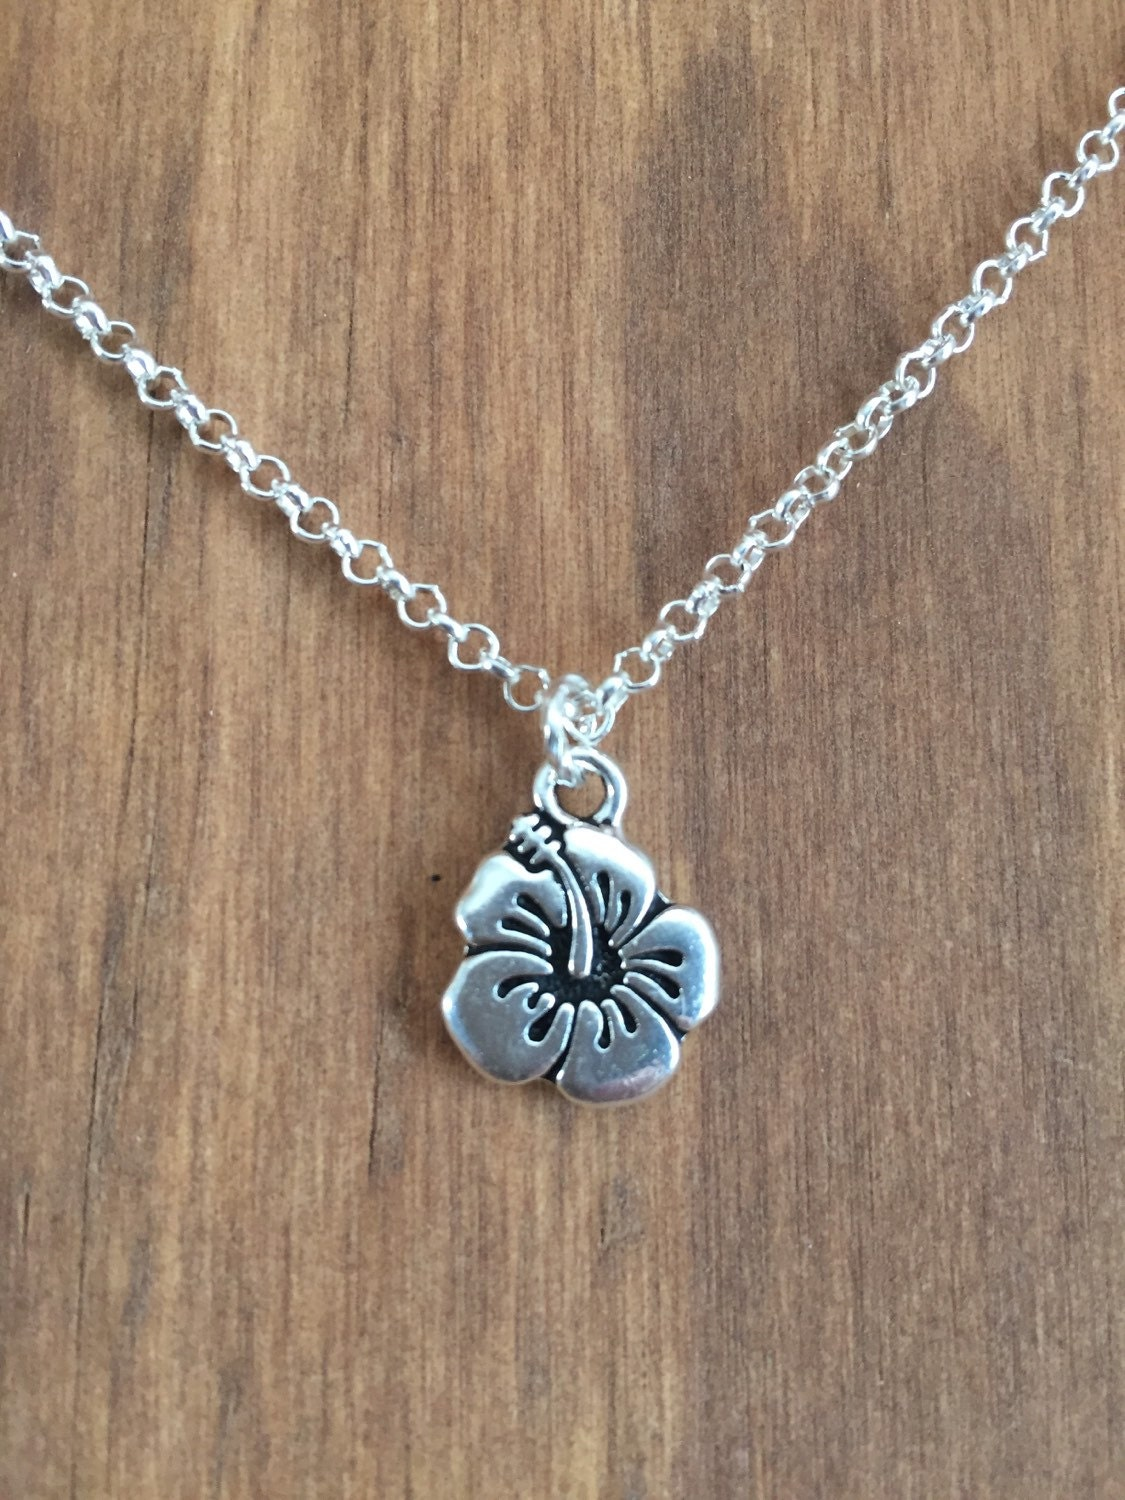 Simple Silver Hibiscus Flower Pendant Necklace